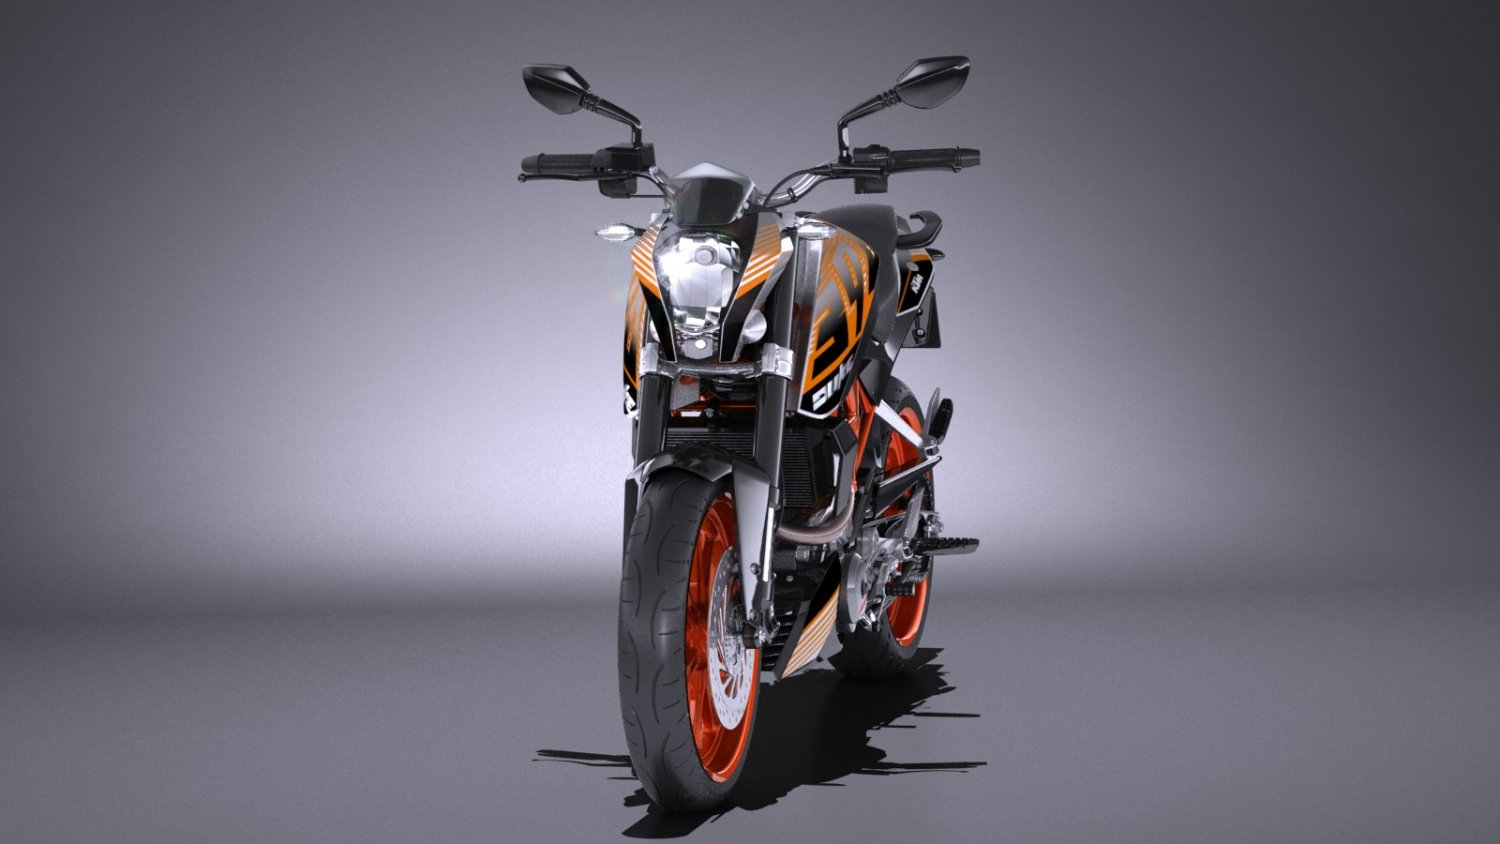 Ktm Duke 390 2016 3d Model In Motorcycle 3dexport